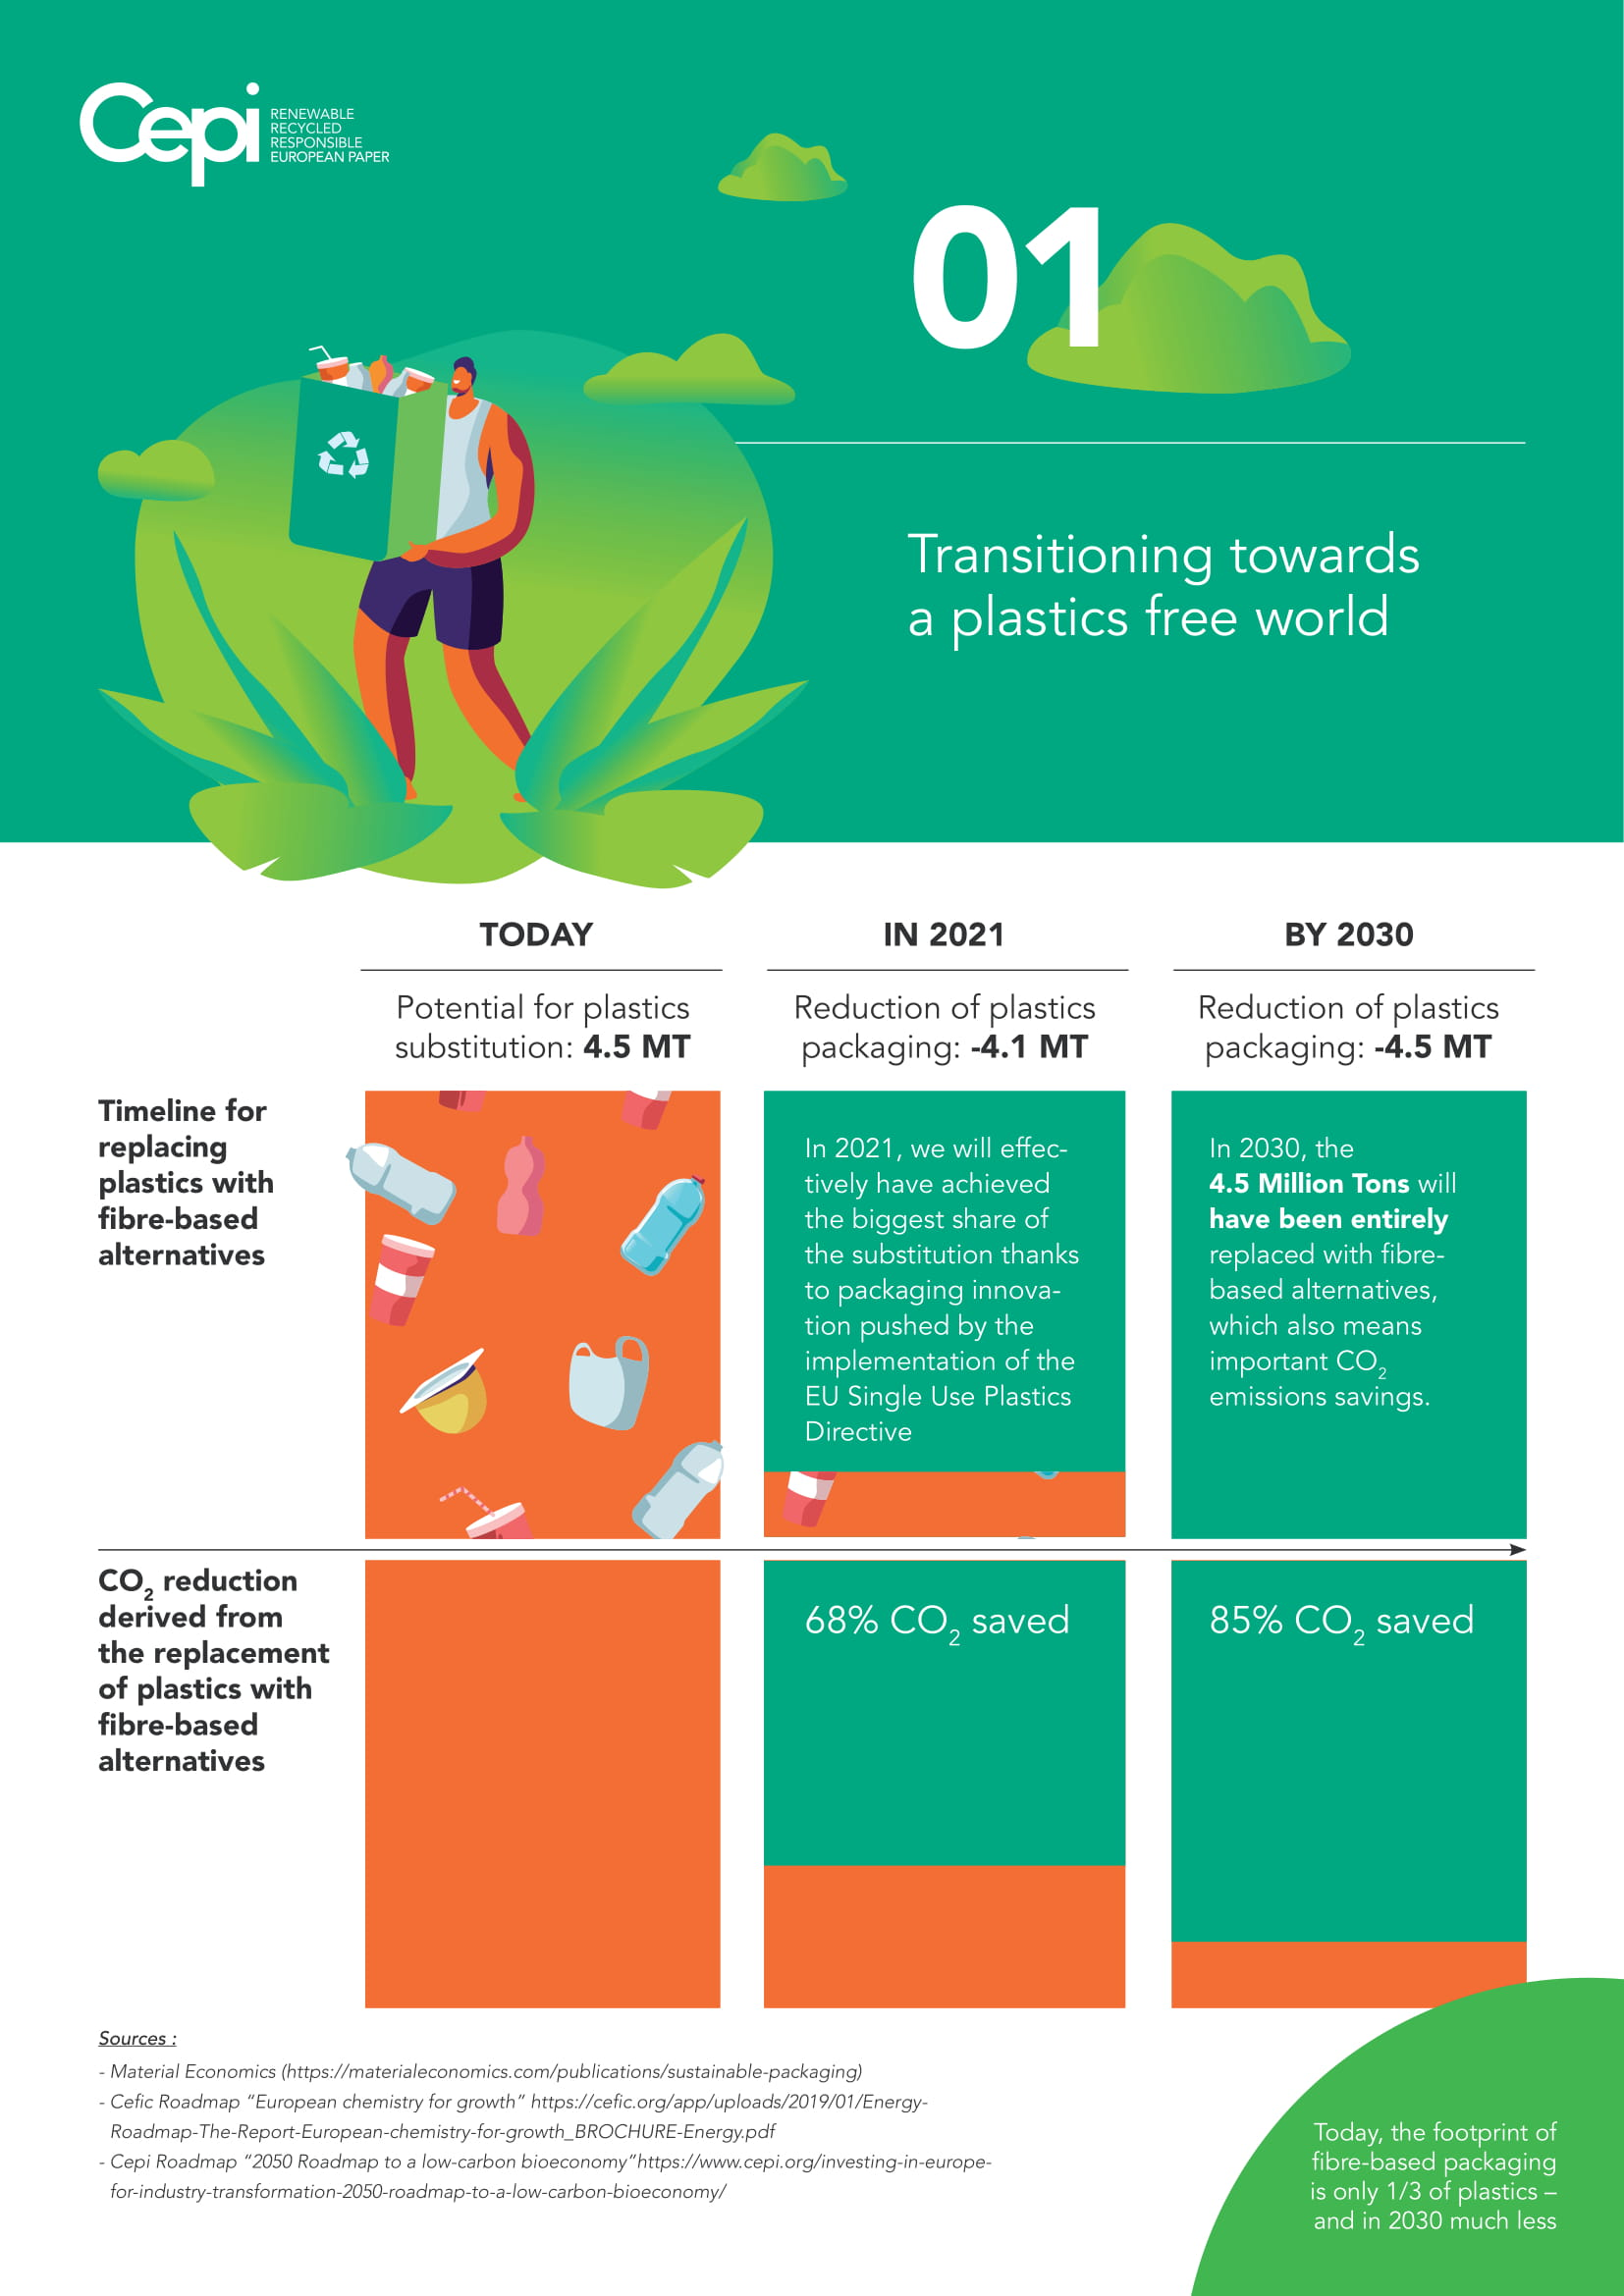 Cepi Fact Sheets - Transitioning towards a plastics free world